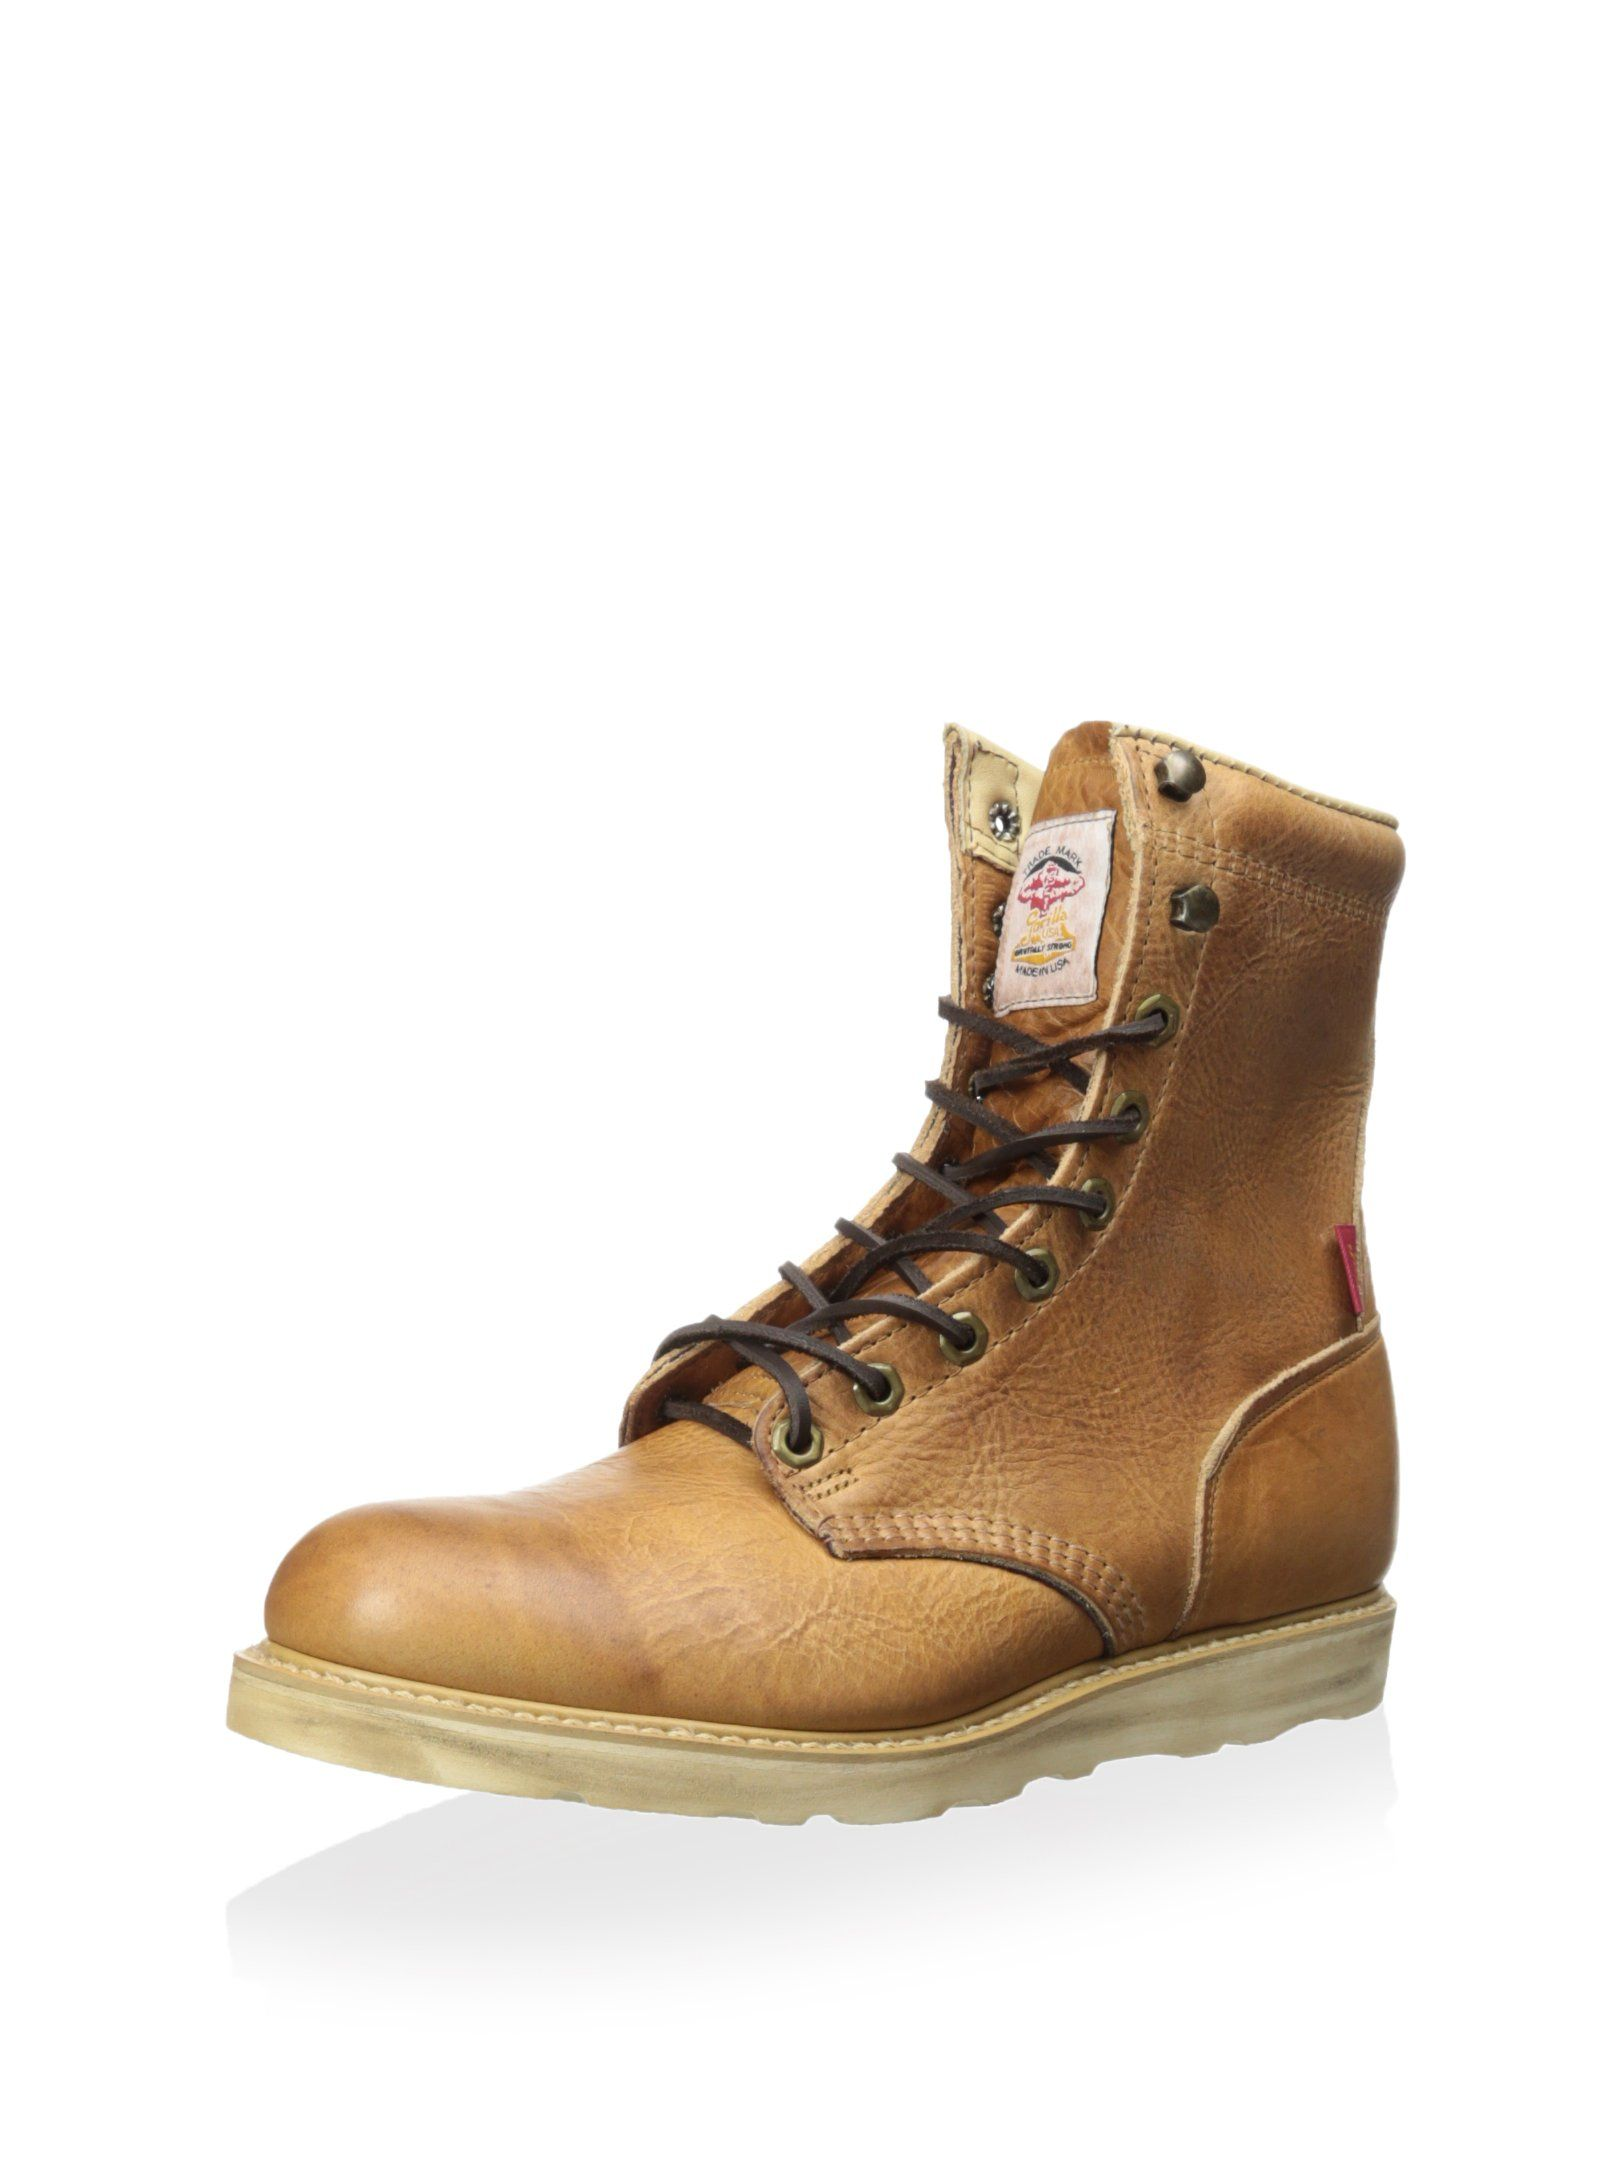 Boots, Lace boots, Amazon fashion clothing